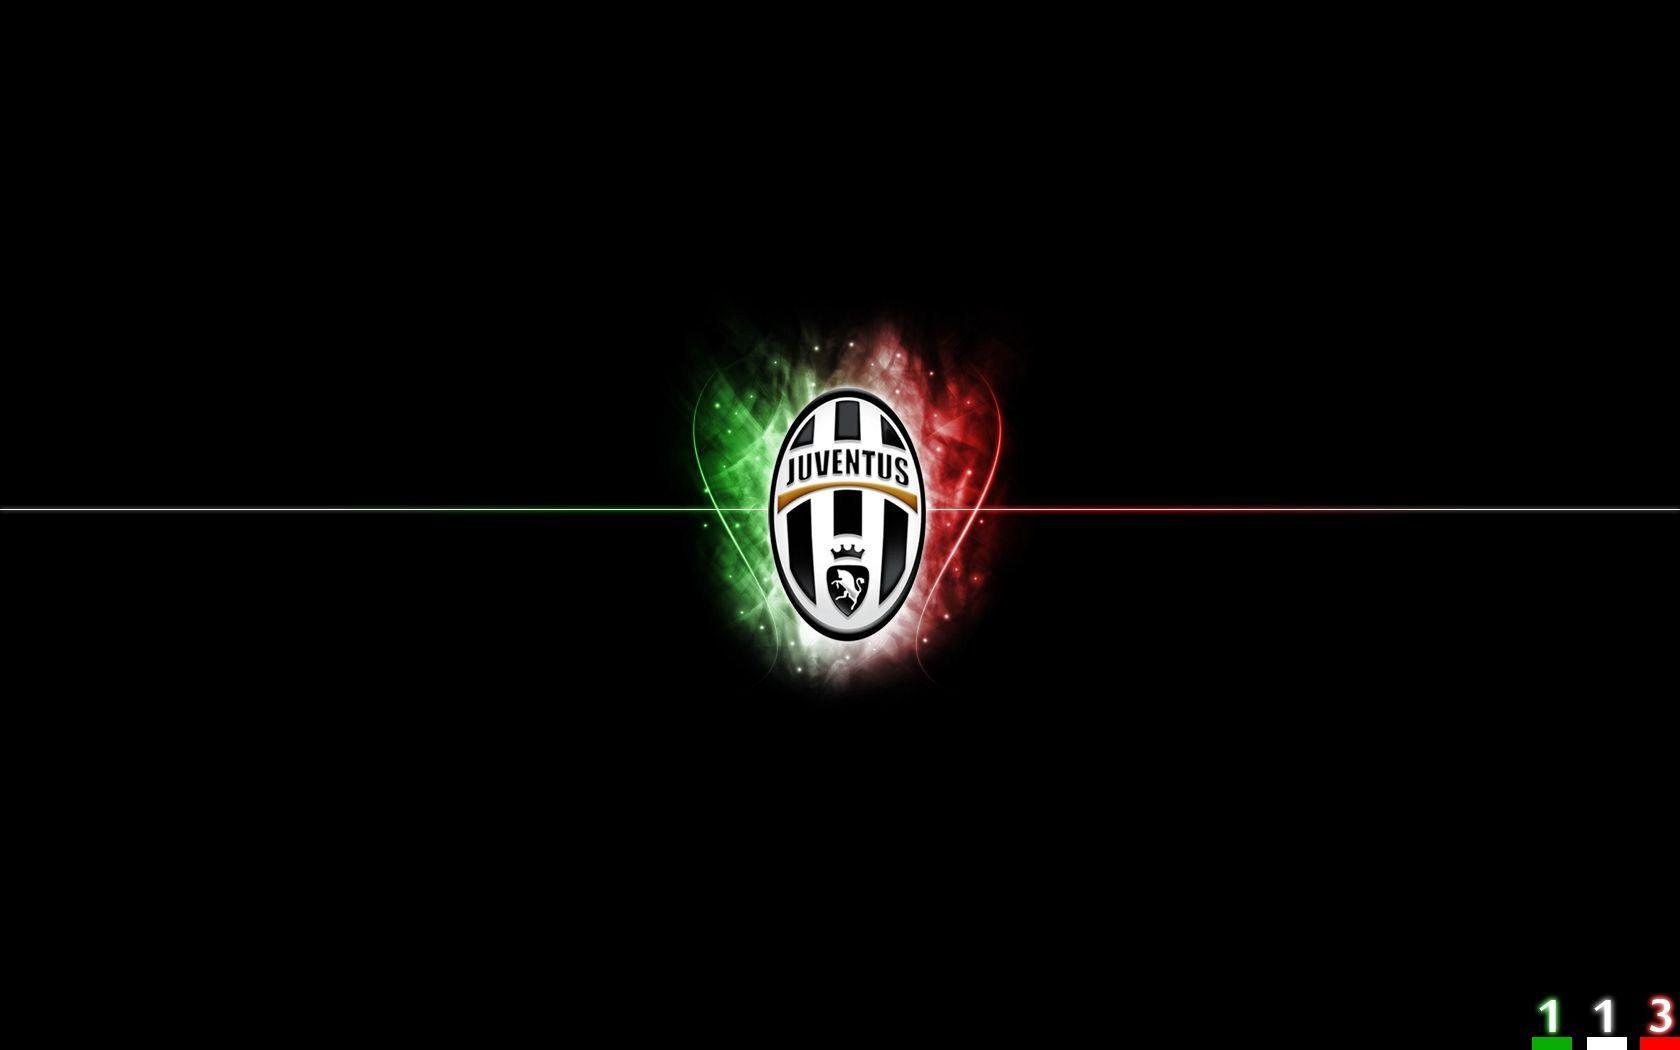 Juve 15133 Hd Wallpapers in Football - Imagesci.com